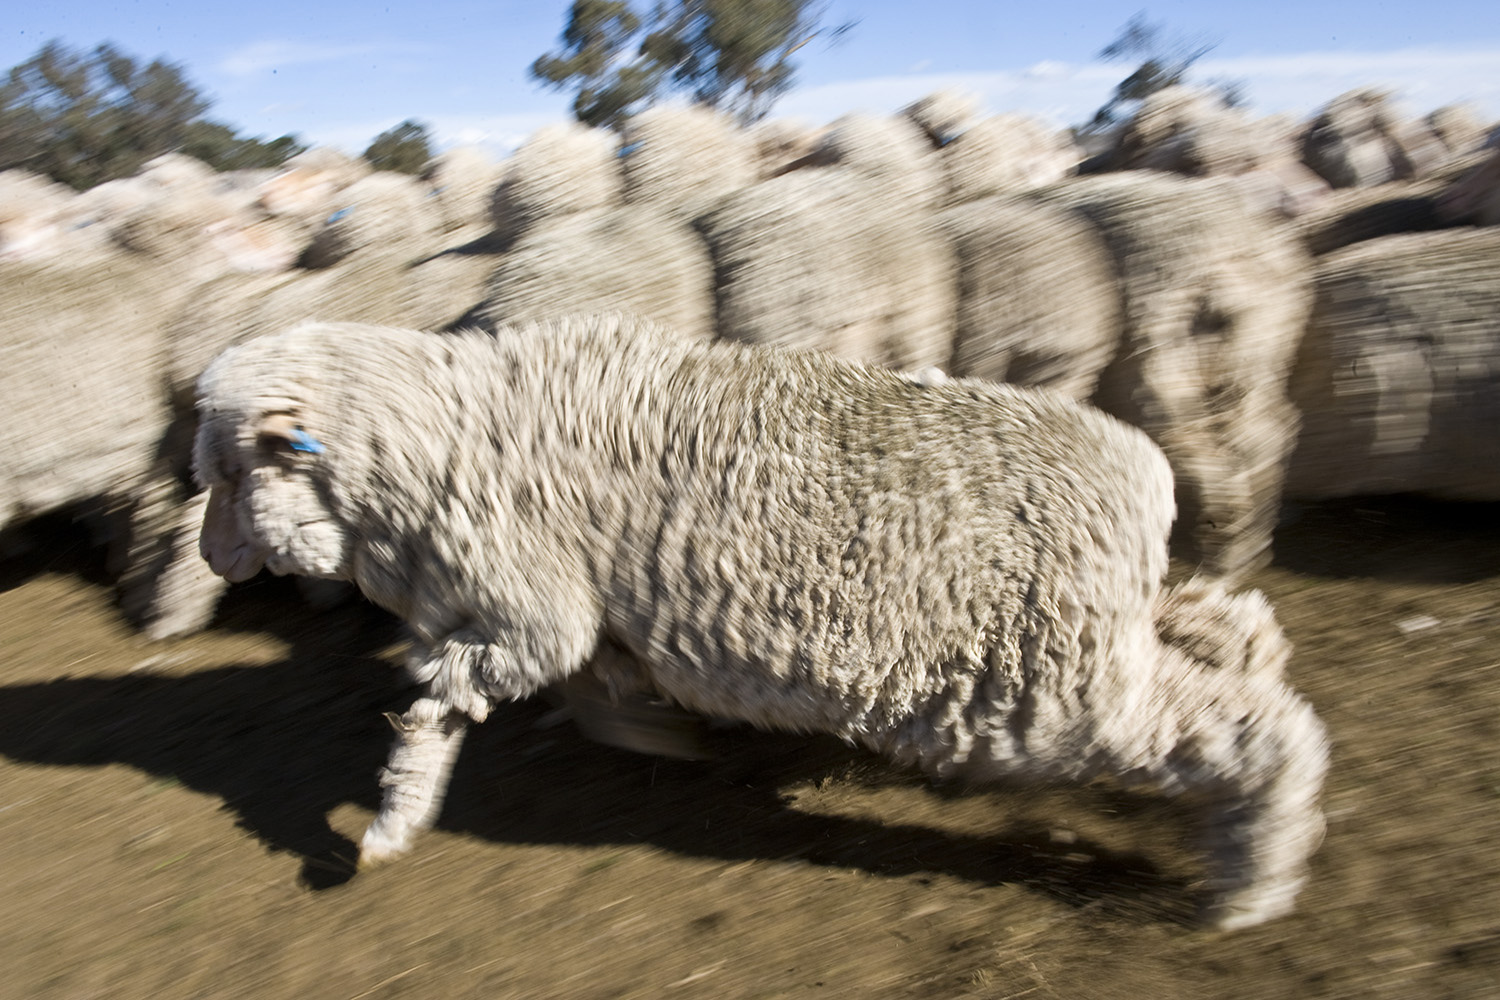 image of AARONTAIT COPYRIGHTED 2014 386 RURAL PHOTOGRAPHER FARM LIFE AGRICULTURE WOOL BEEF STOCKMAN MUSTER CATTLE FARM AUSTRALIAN  SHEEP RAM